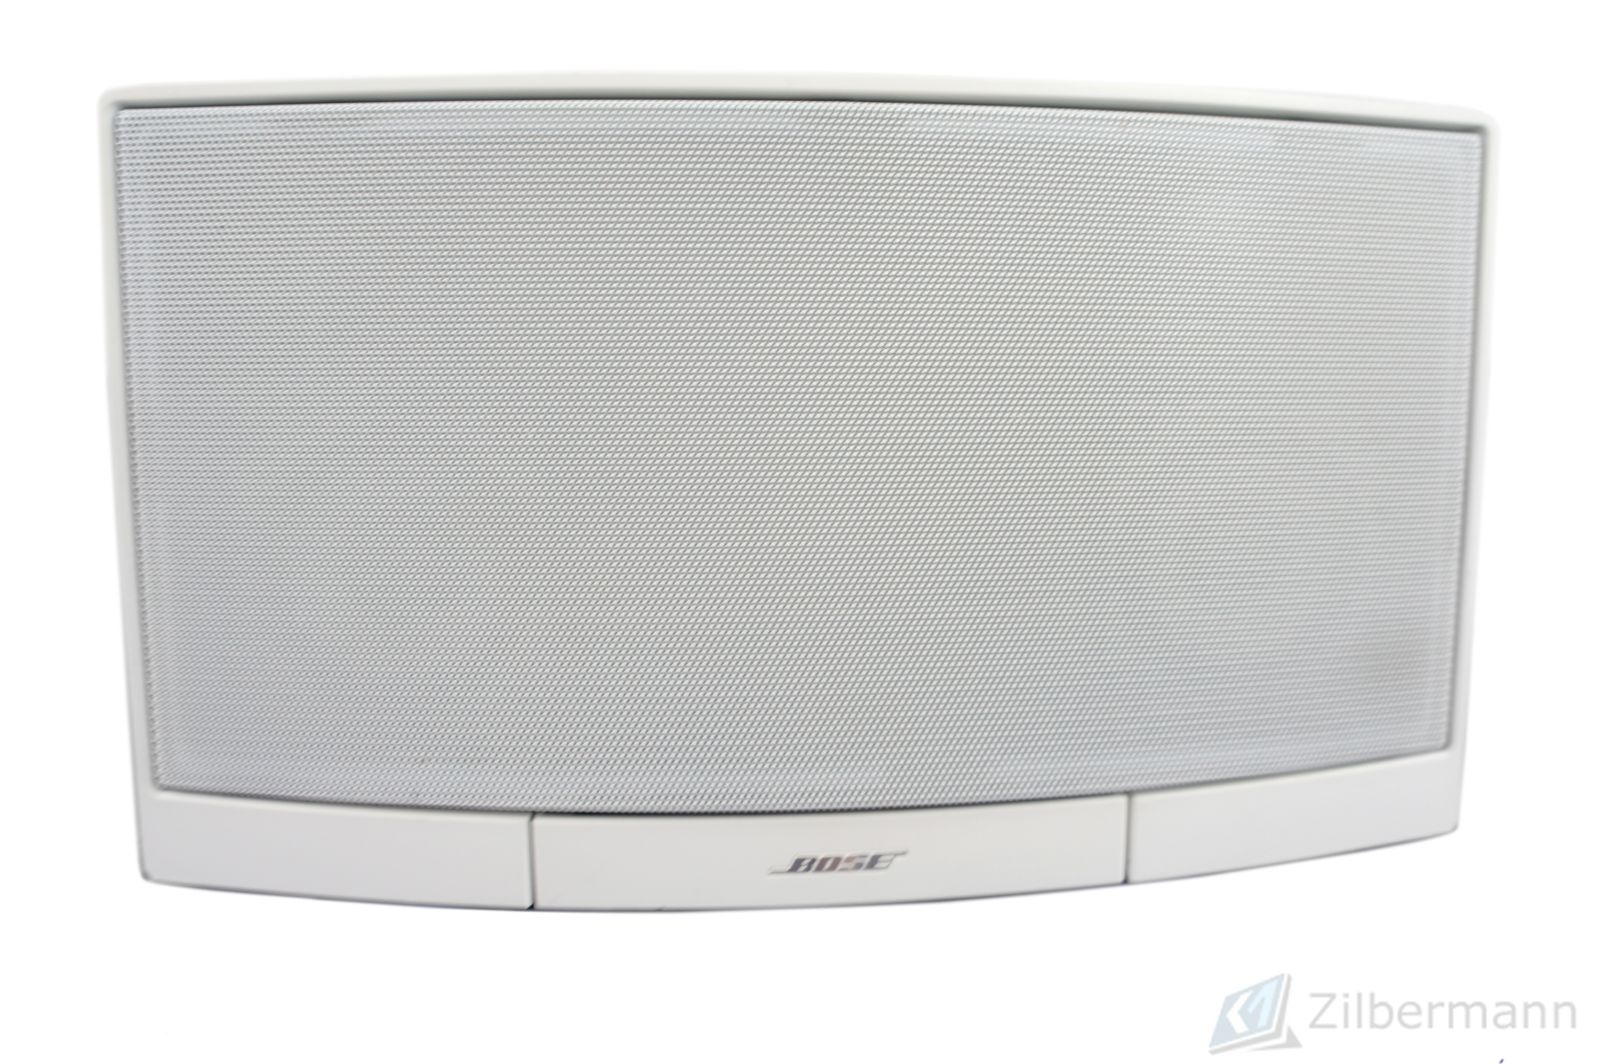 Bose_Lifestyle_Roommate_Powered_Speaker_System_Weiss_06_6dylMs1